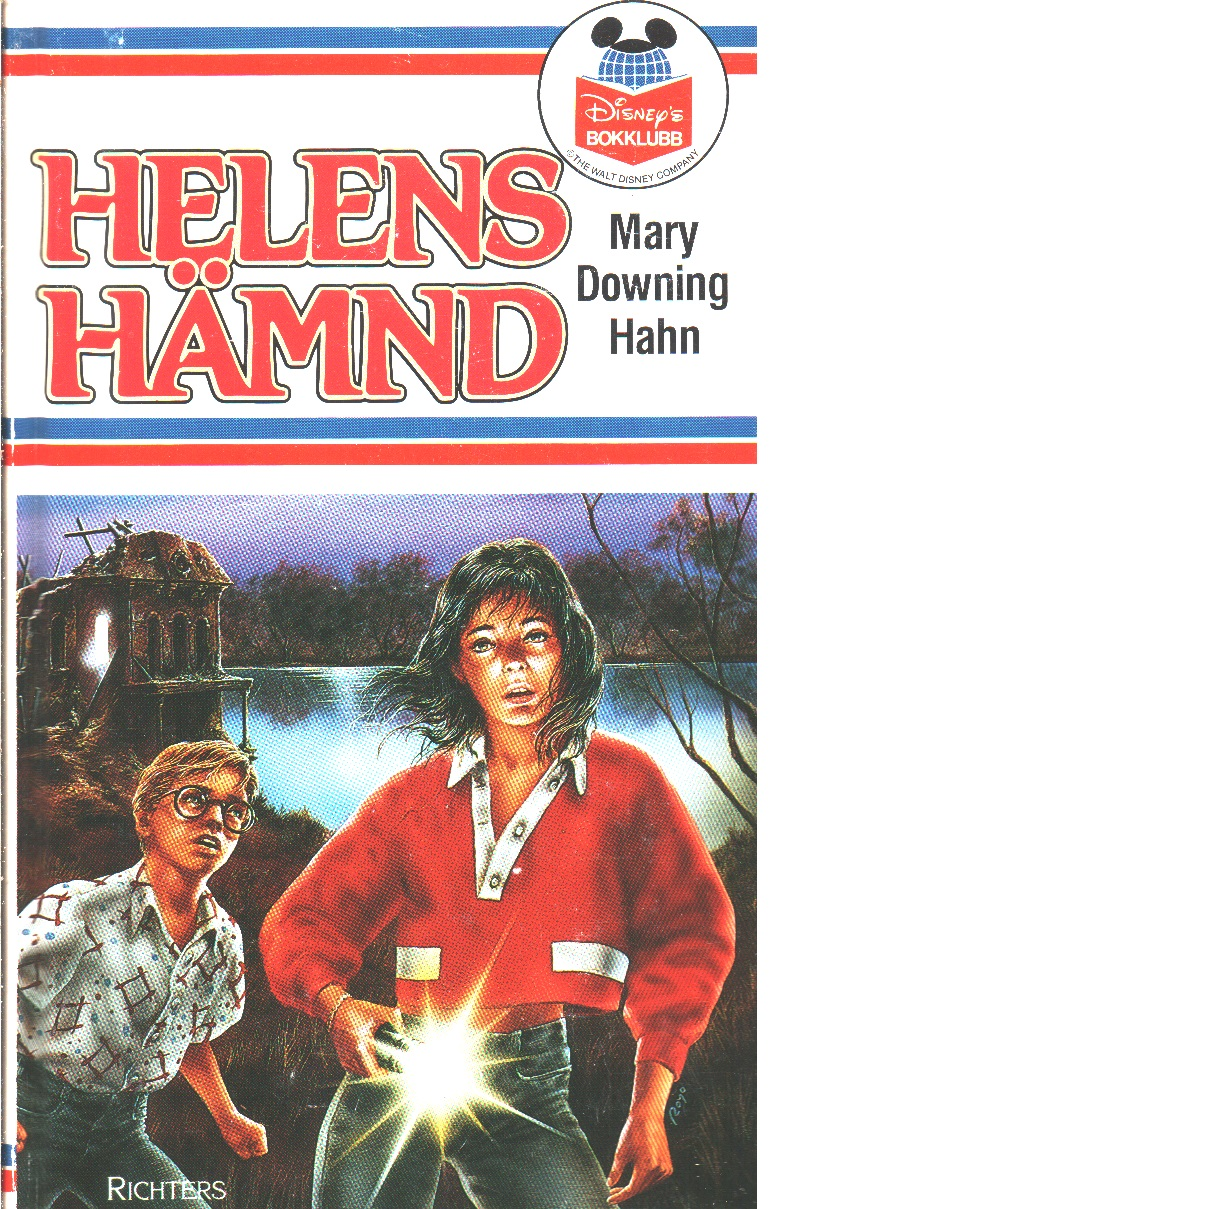 Helens hämnd - Hahn, Mary Downing